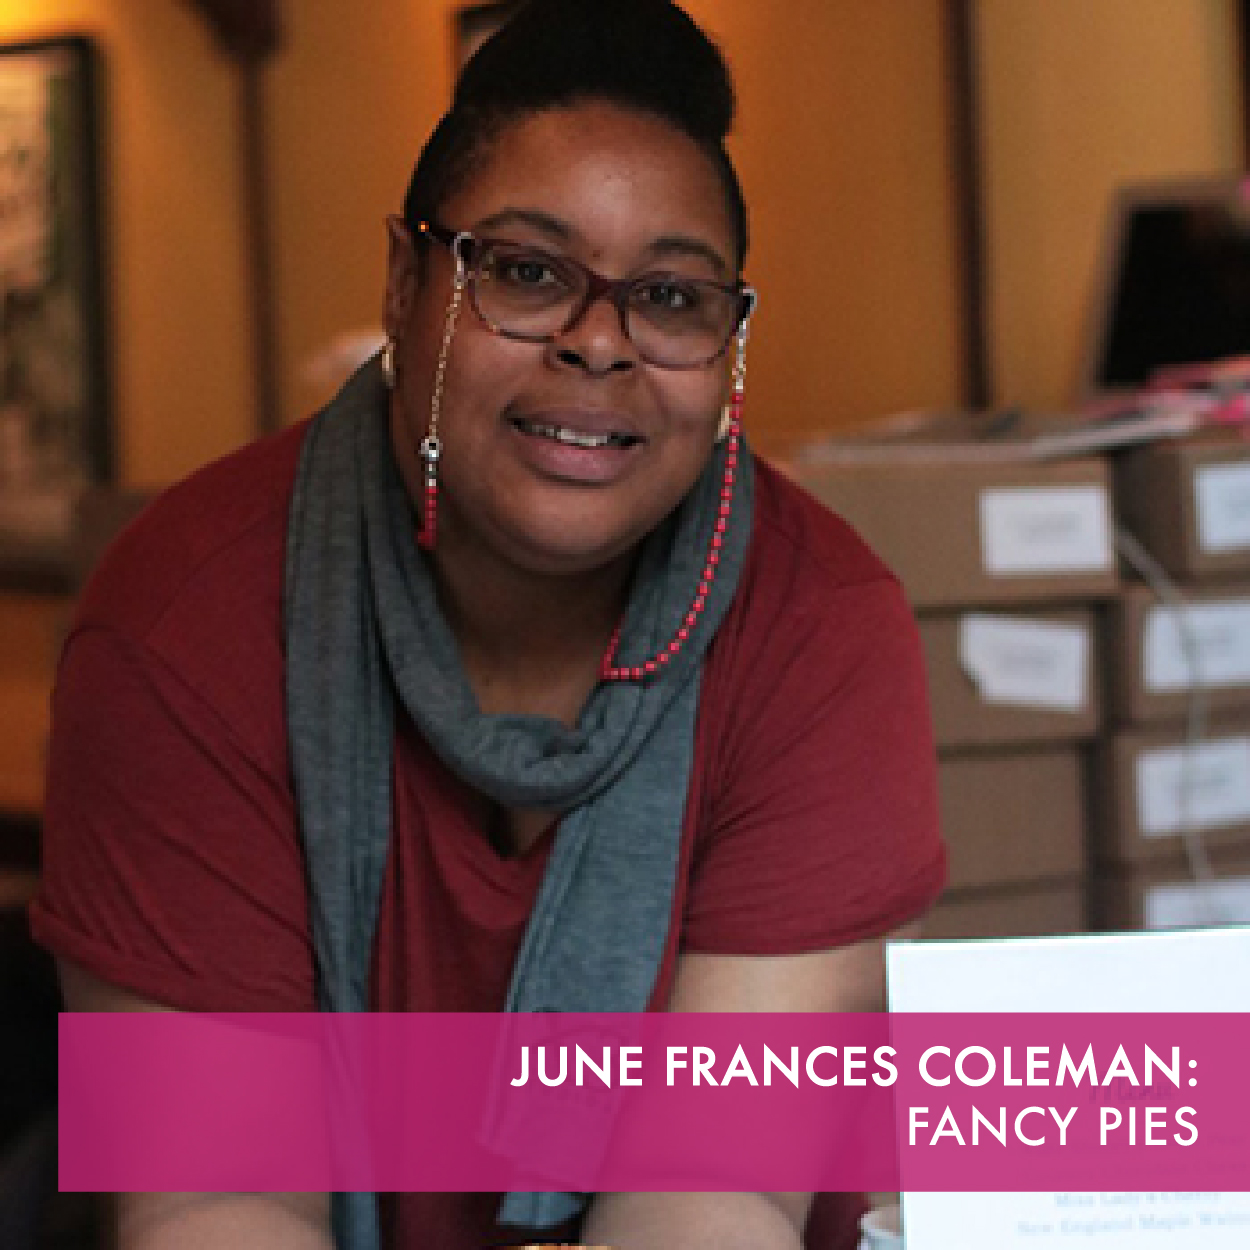 Founded in 2011, Fancy Pies is a seasonal pop up shop in Washington Heights selling home-style dessert pies with high quality locally sourced produce in a signature all-butter crust.